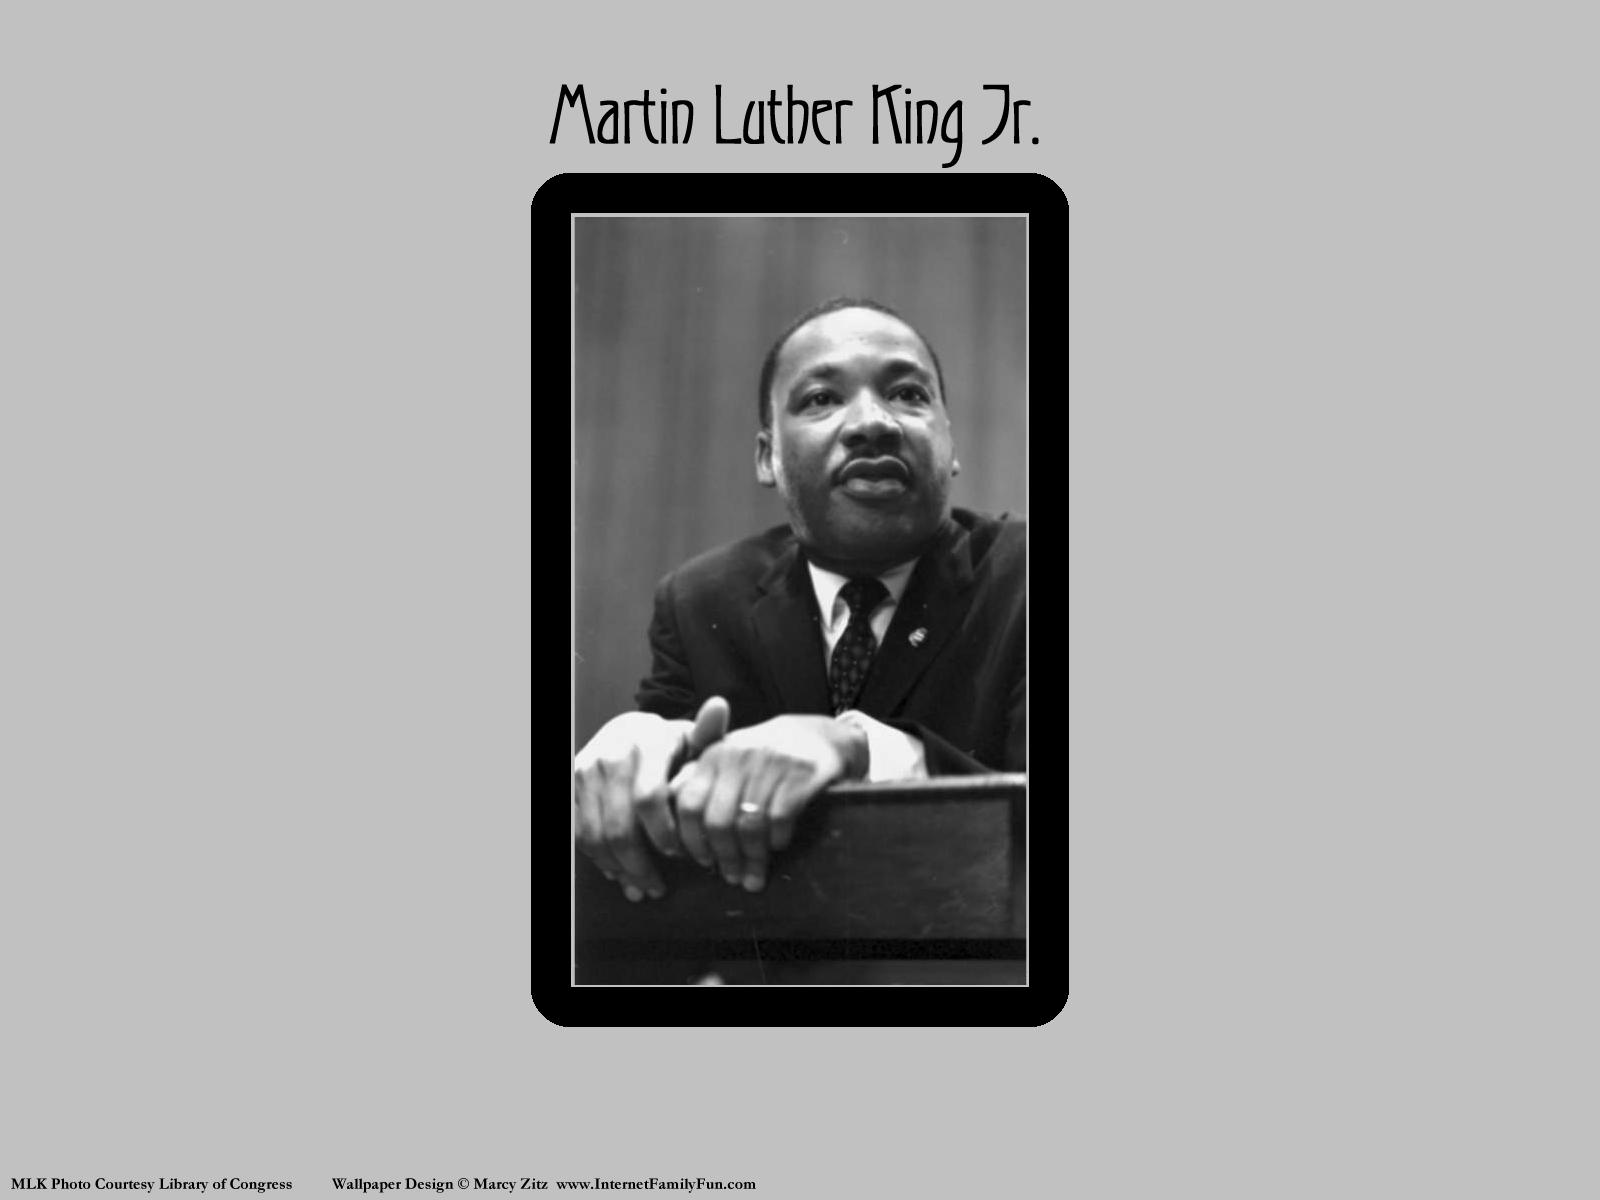 Martin Luther King Jr Day displayed at 500x375